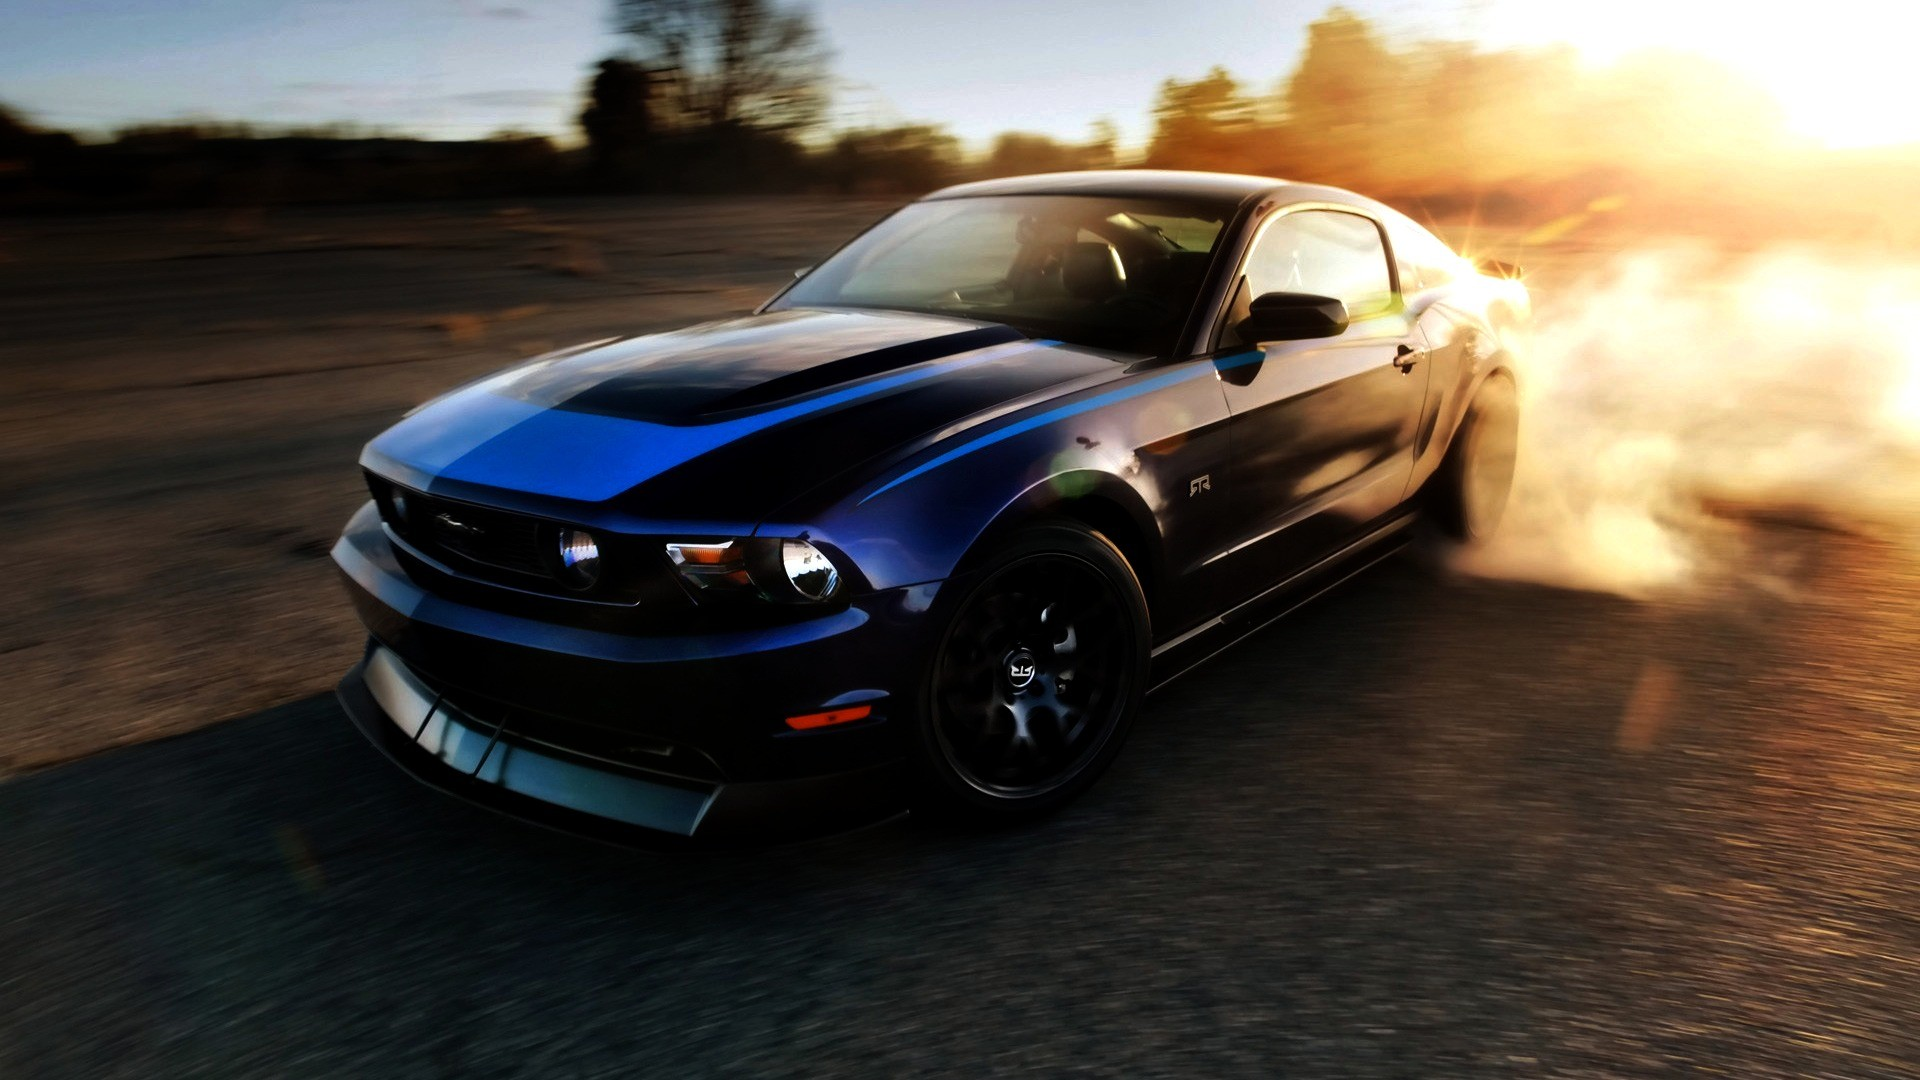 Best Collection of Mustang Wallpapers For Desktop Screens 1920x1080